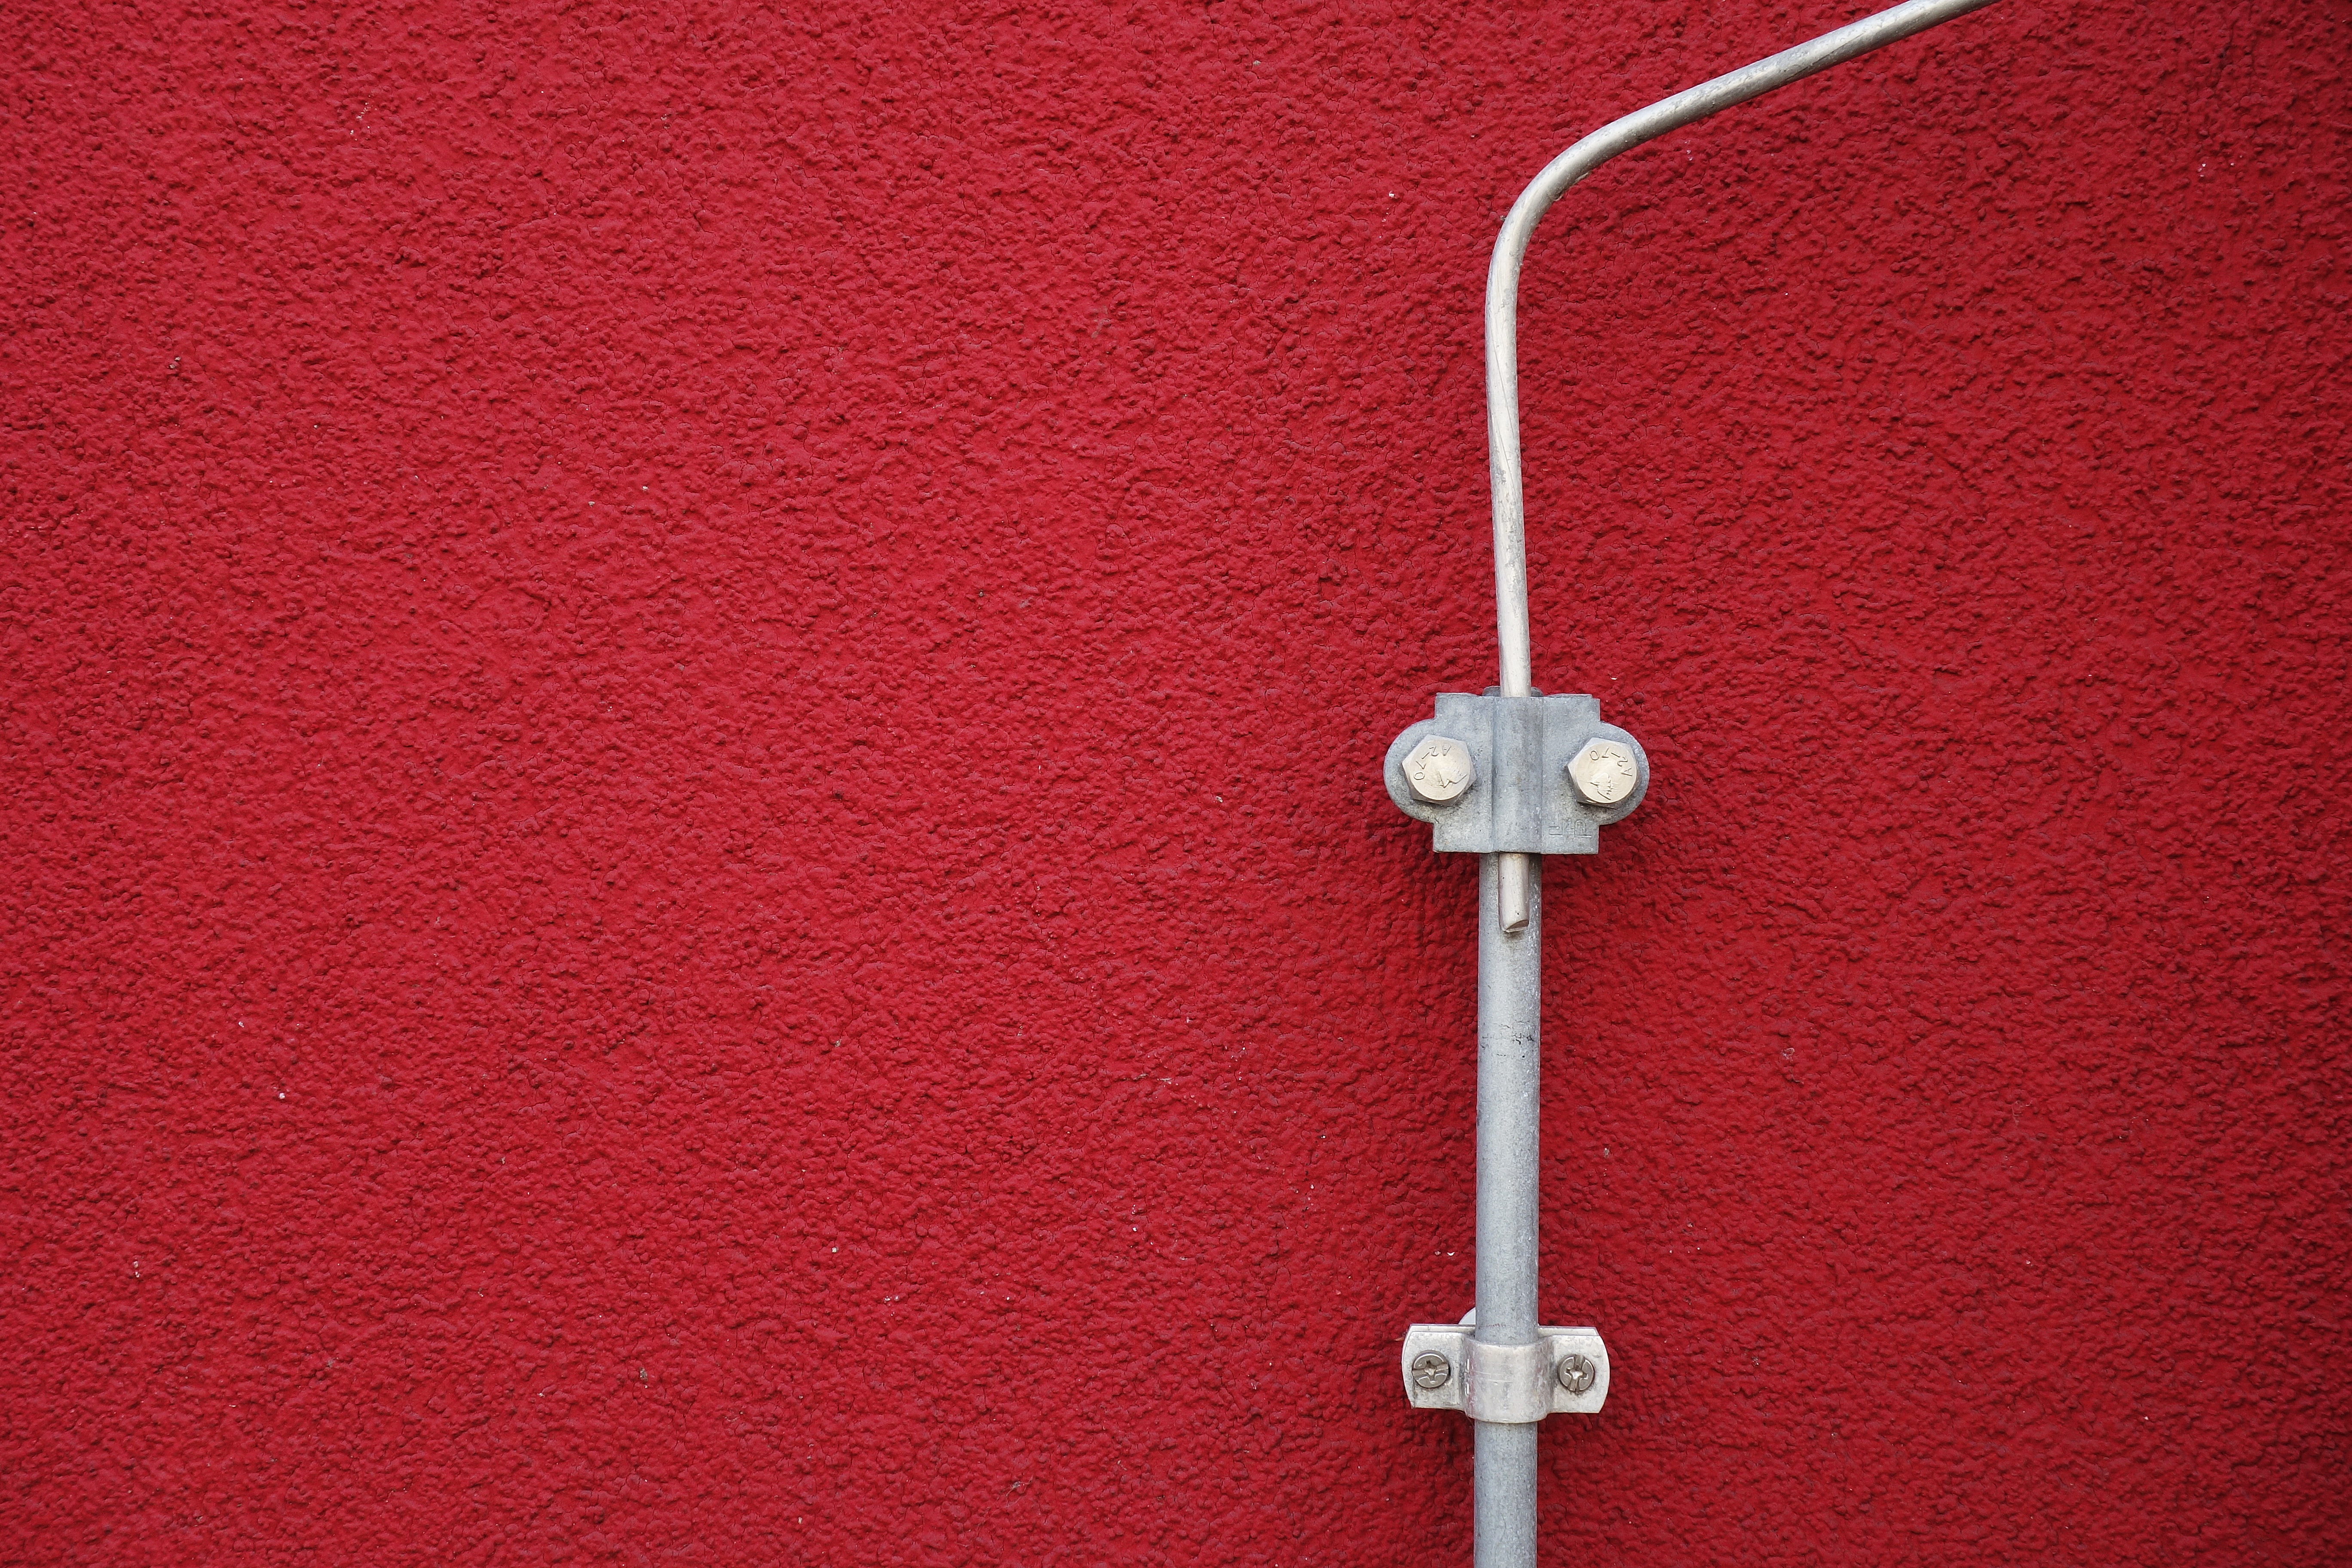 gray metal tube mounted on red surface